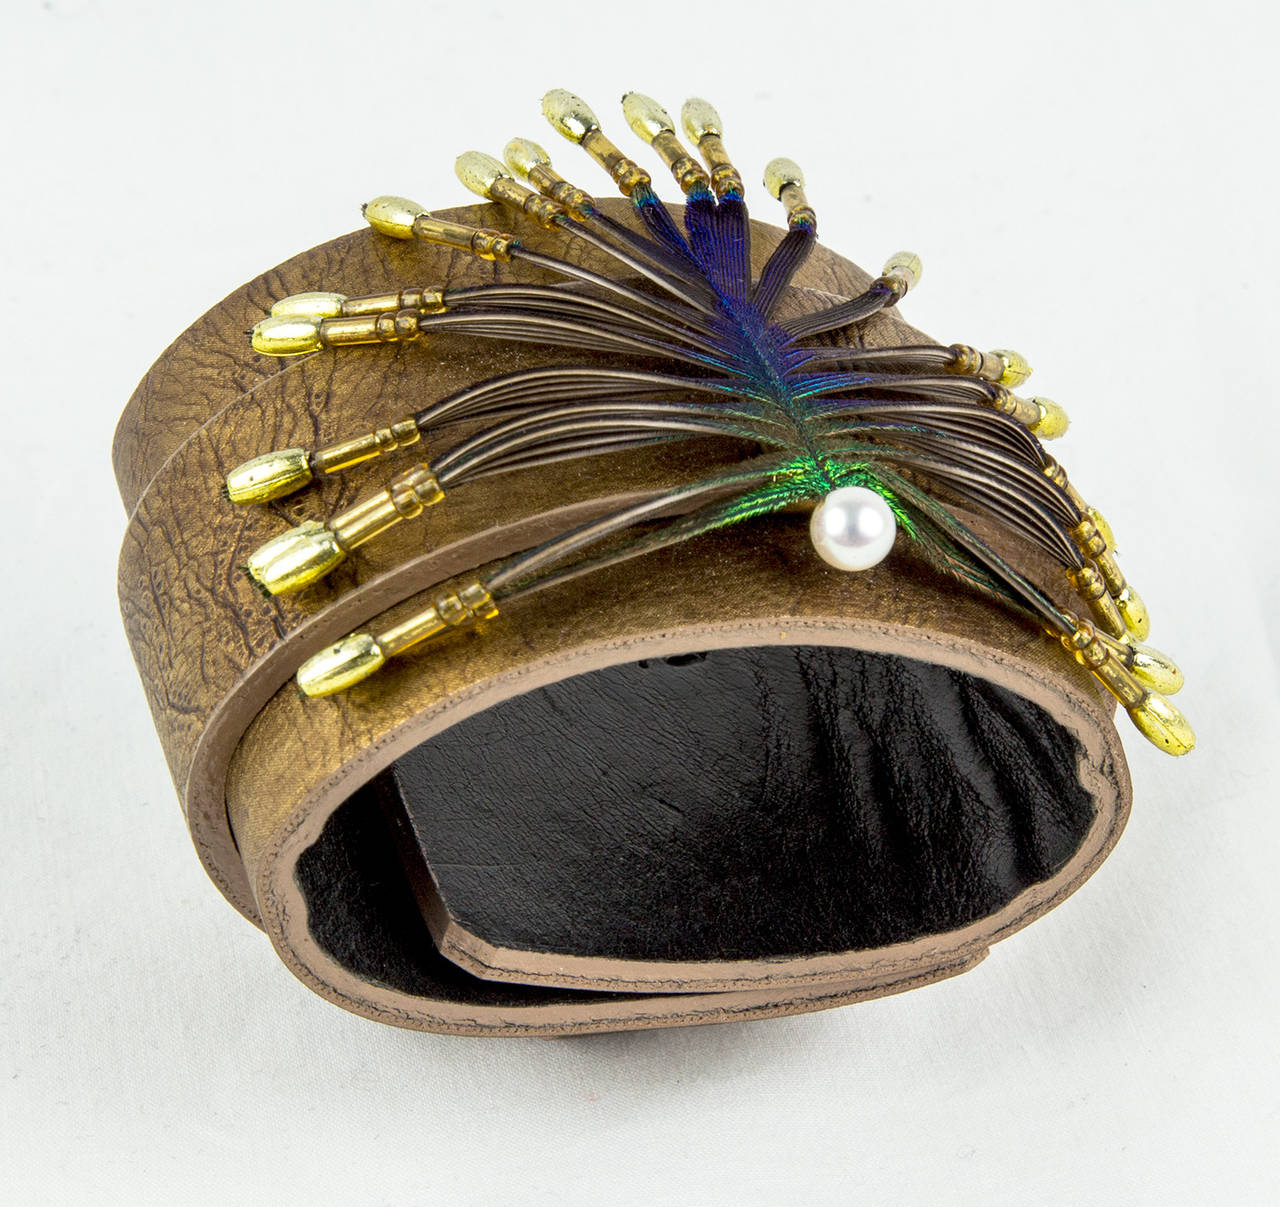 Stylized Peacock Feather Pendant on Leather Cuff 3